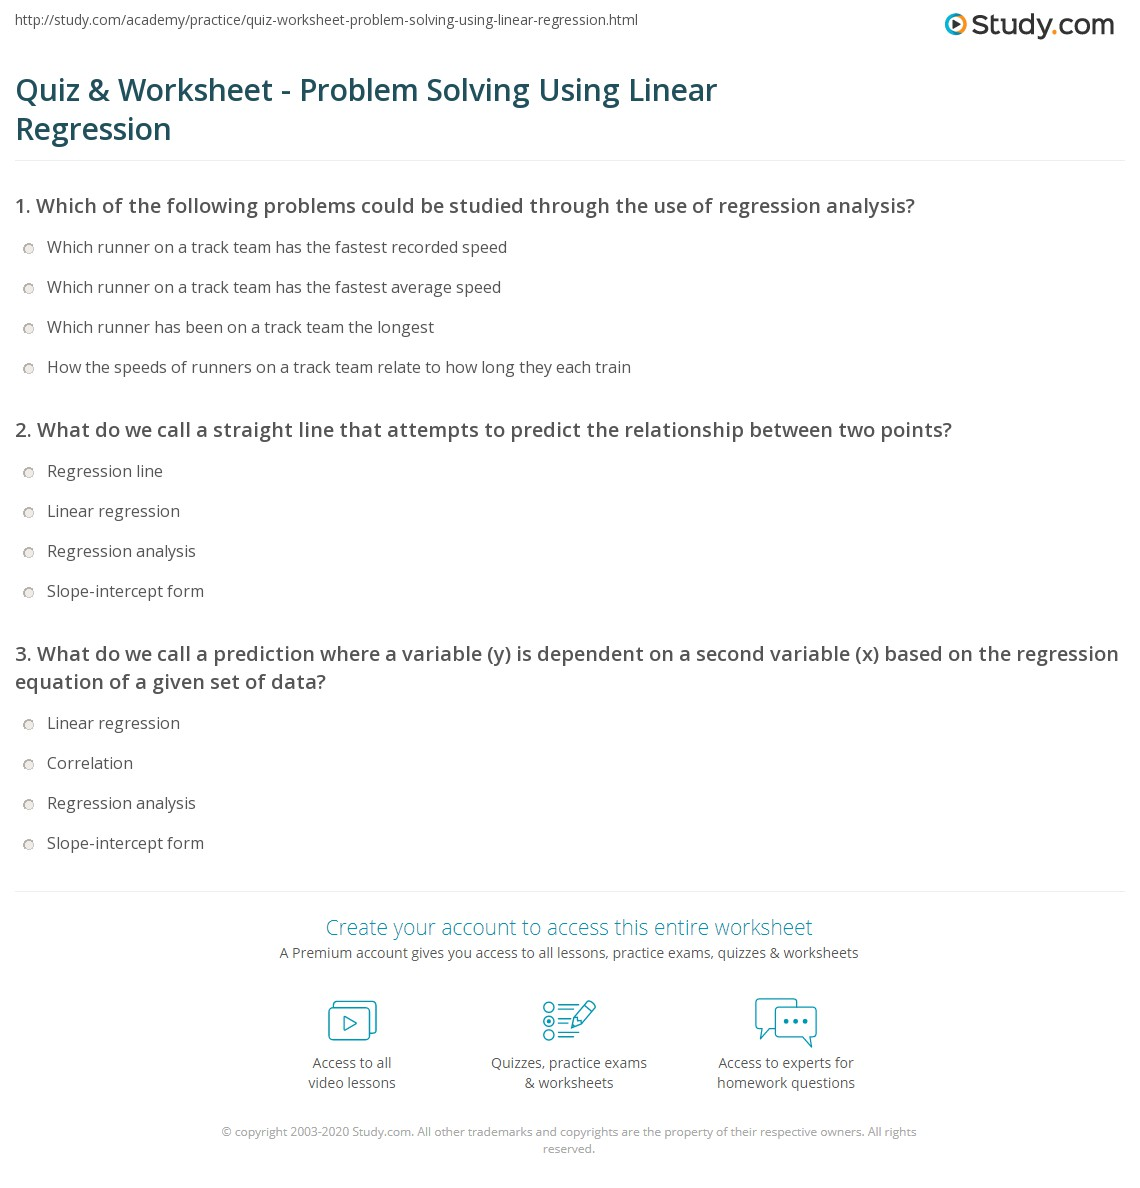 quiz worksheet problem solving using linear regression. Black Bedroom Furniture Sets. Home Design Ideas